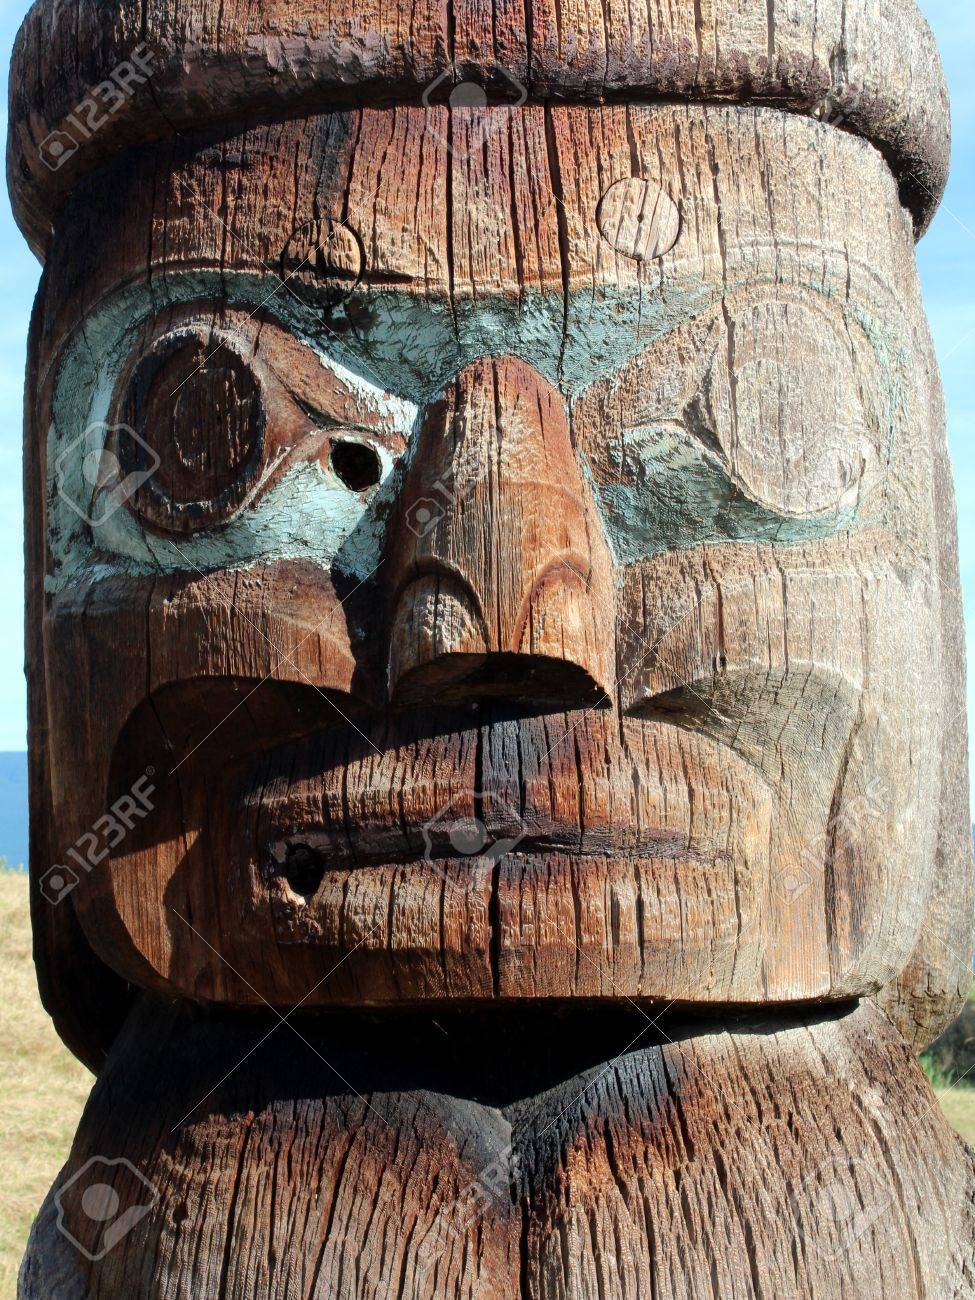 Haida pole carving stock photo edit now  shutterstock